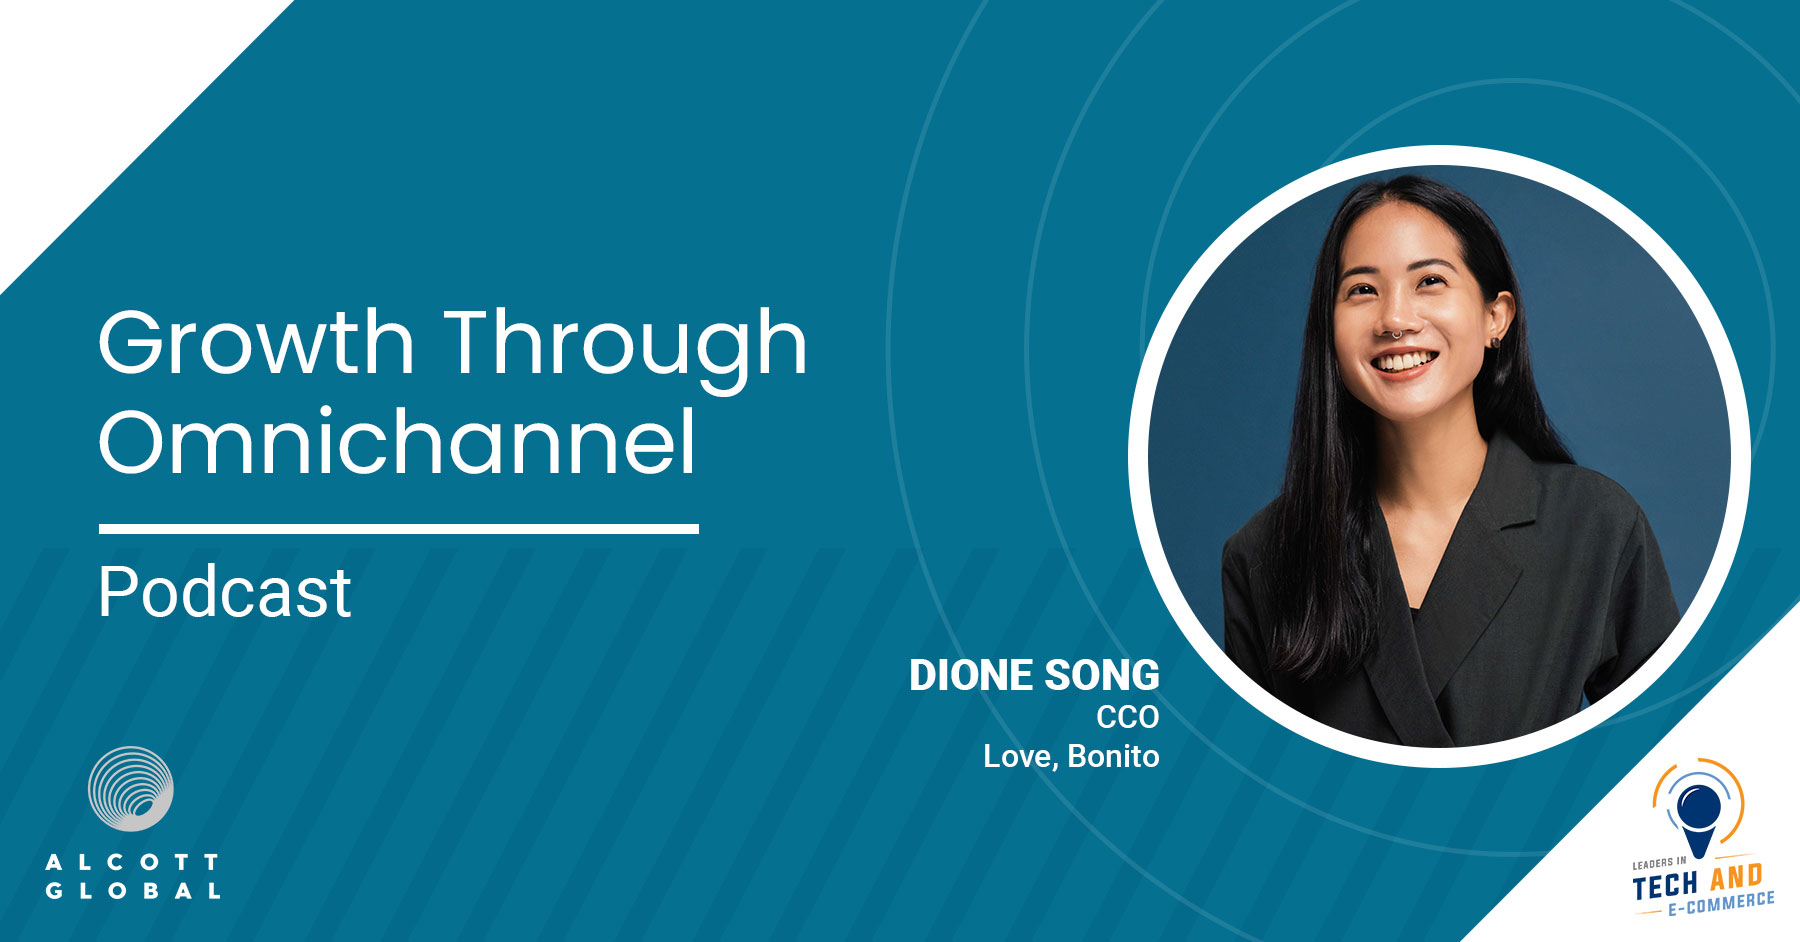 Growth Through Omnichannel with Dione Song CCO Love, Bonito